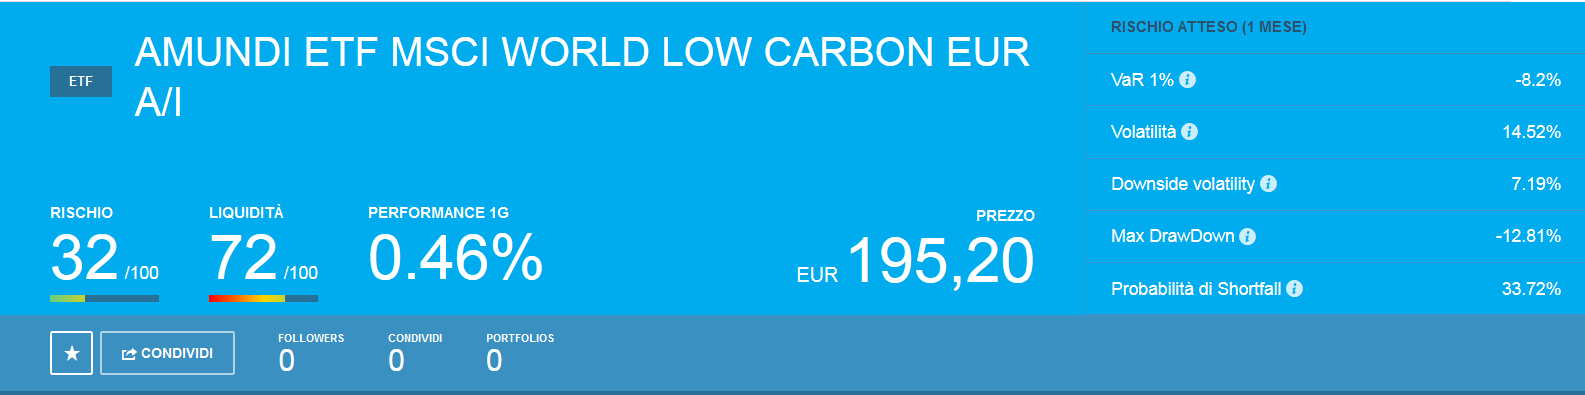 Amundi Etf Msci World Low Carbon Ucits